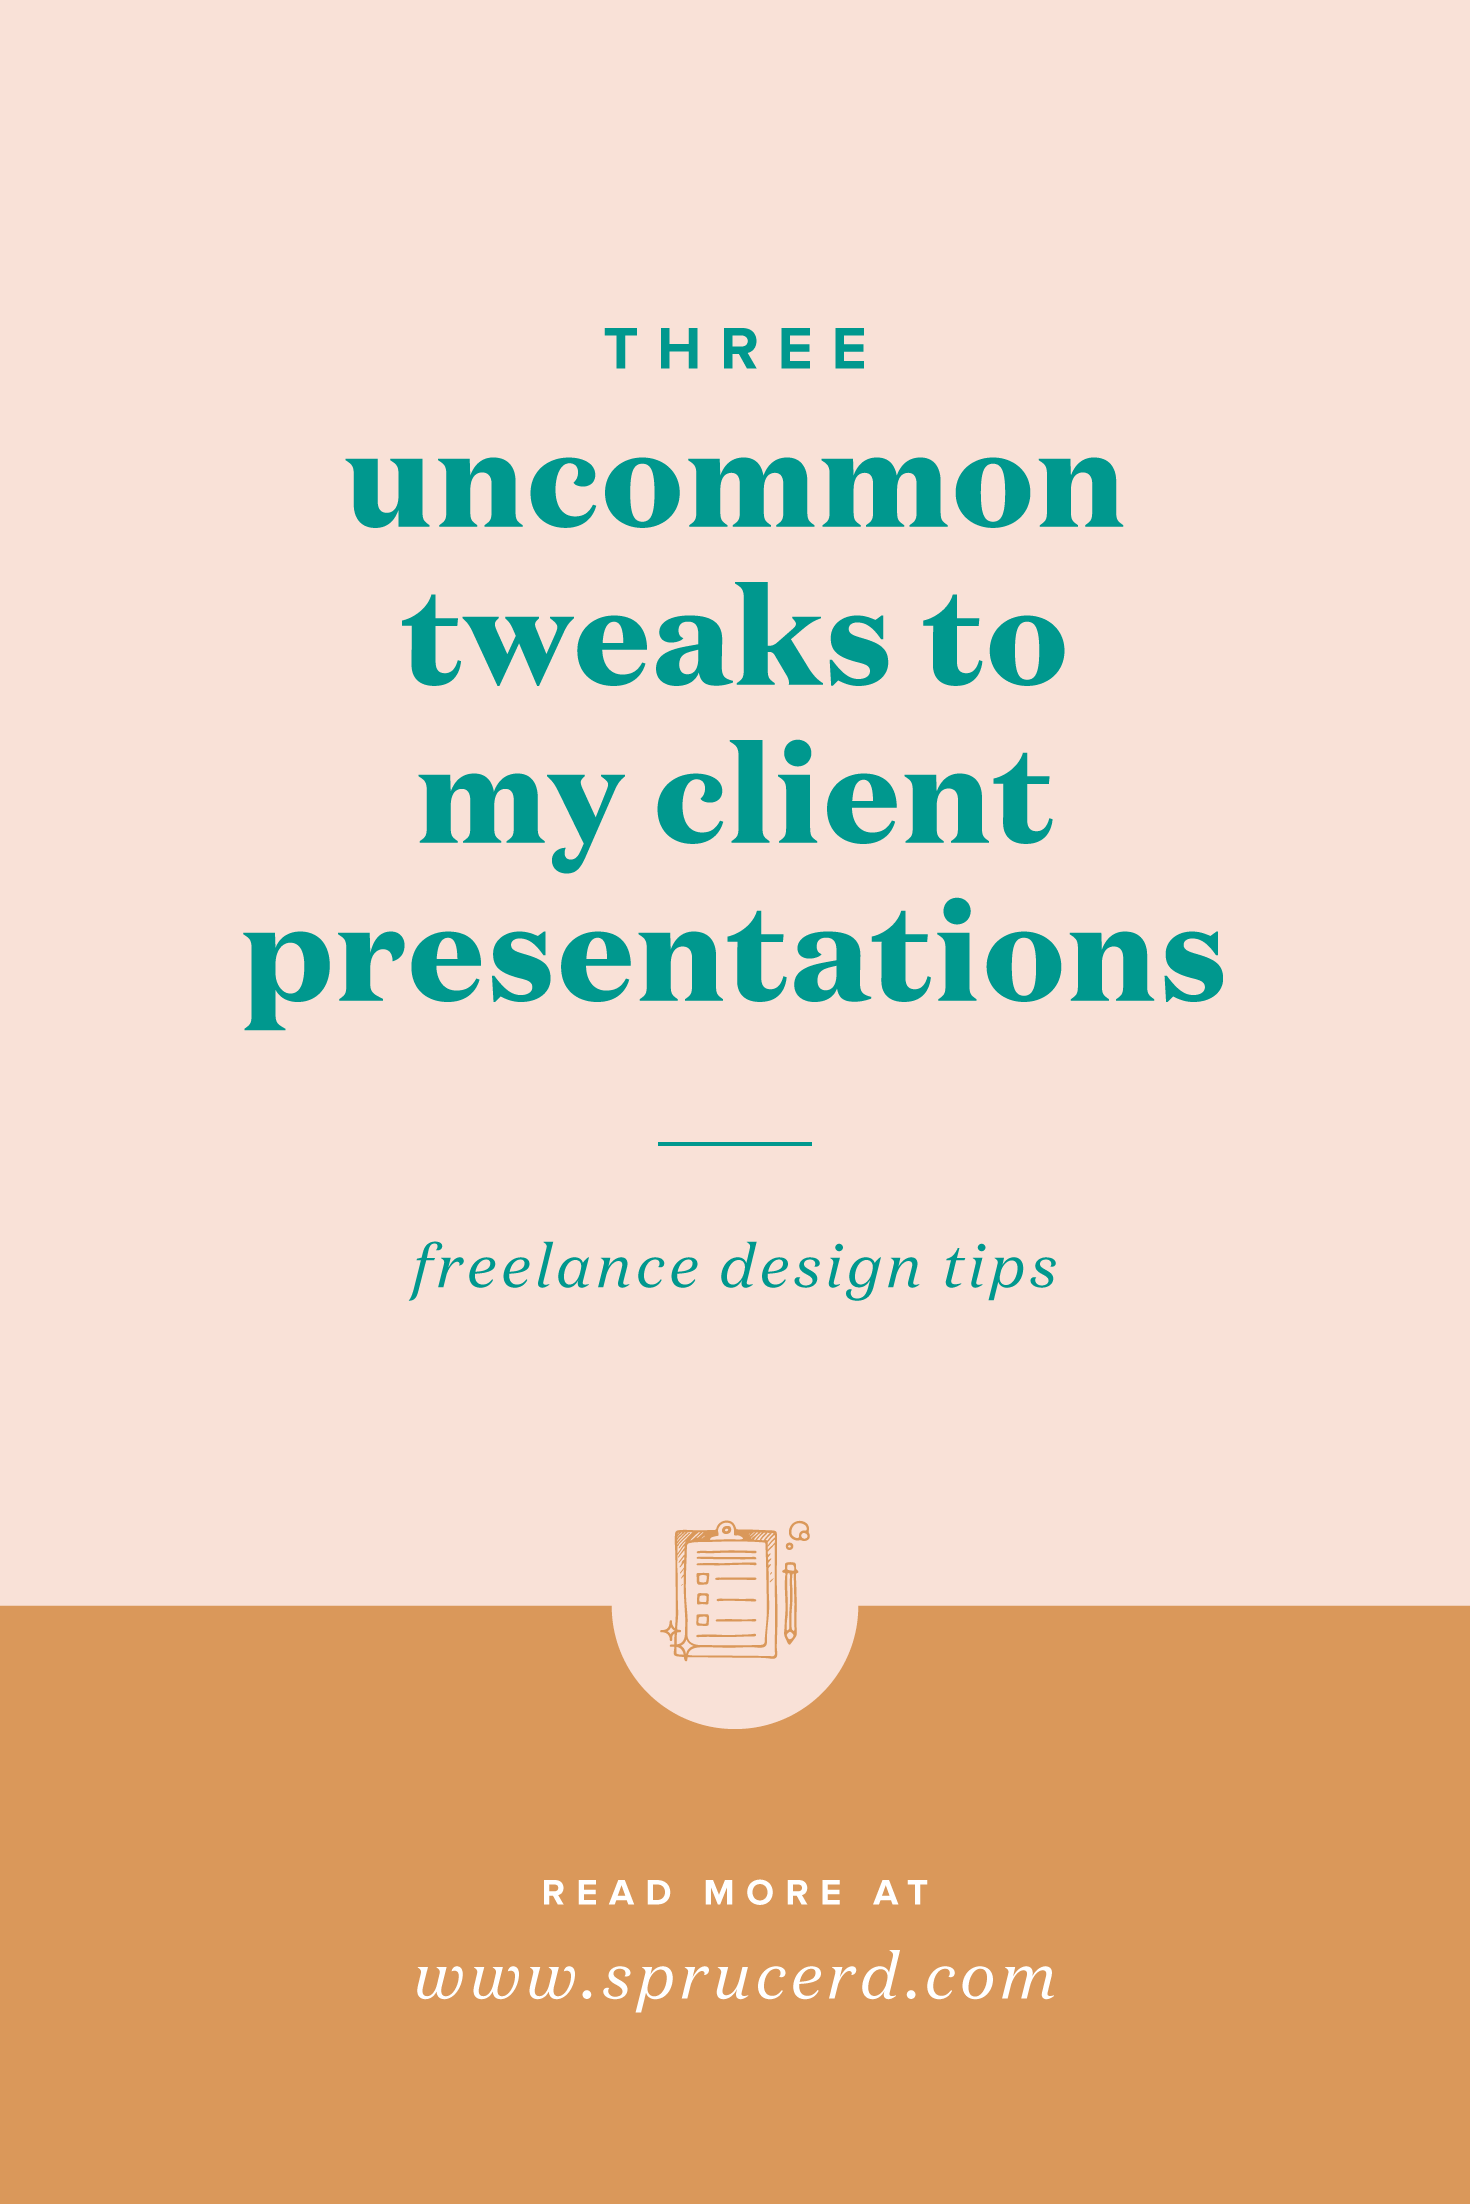 3 uncommon tweaks to my client presentations | Spruce Rd. Design — How to pitch your design work to clients using these three tweaks to your client presentations. #freelance #design #logo #branding #graphicdesign